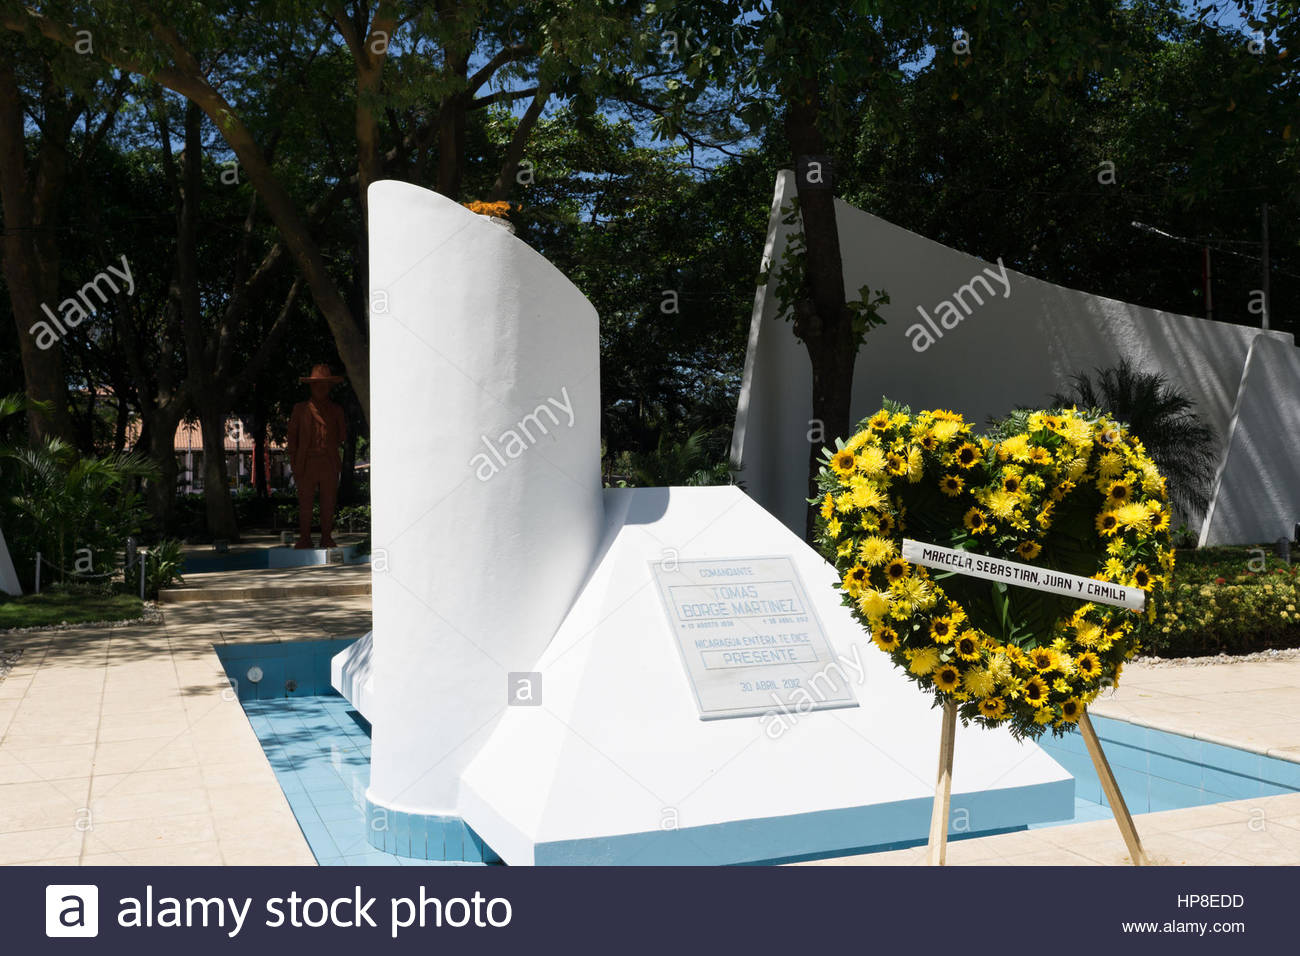 eternal-flame-on-the-tomb-of-tomas-borge-with-wreath-in-front-from-HP8EDD.jpg